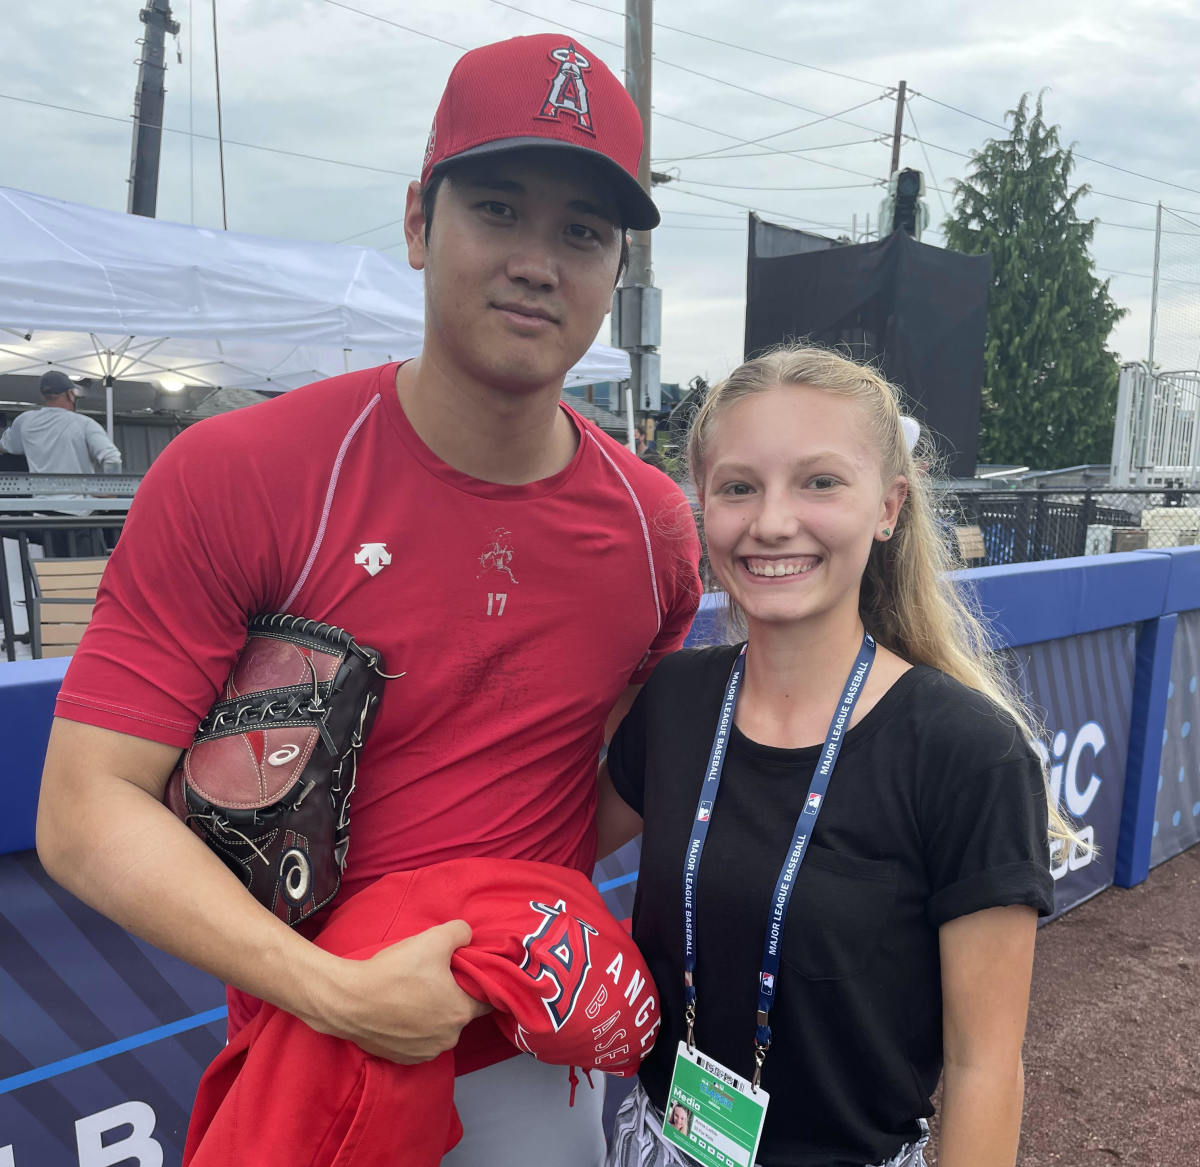 Ohtani with Kid Reporter Anna Laible